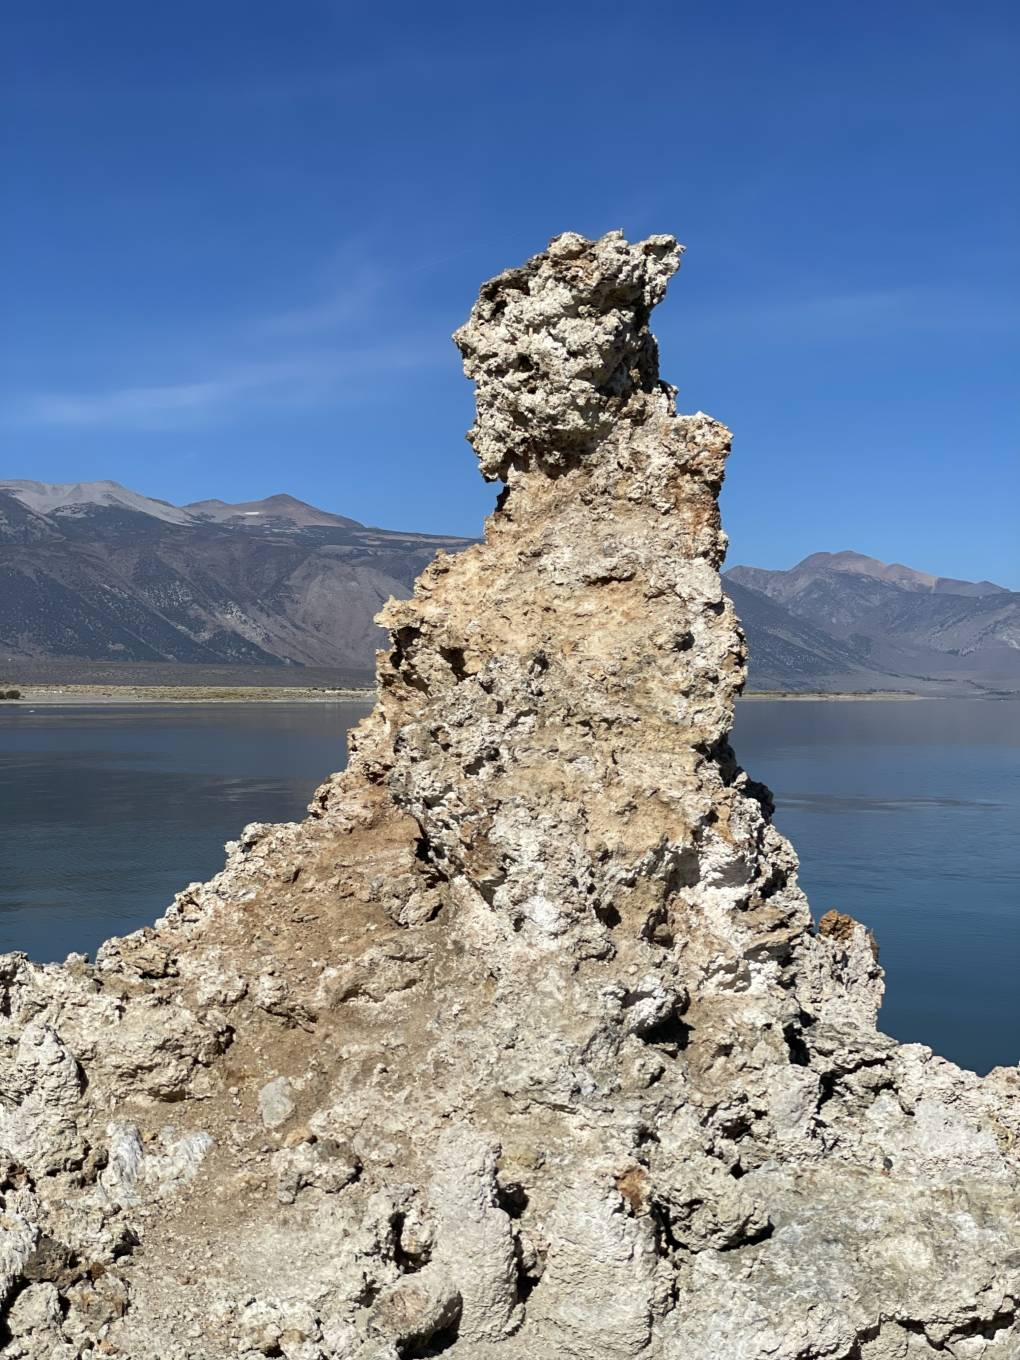 A piece of tufa that looks like the side profile of a warrior.